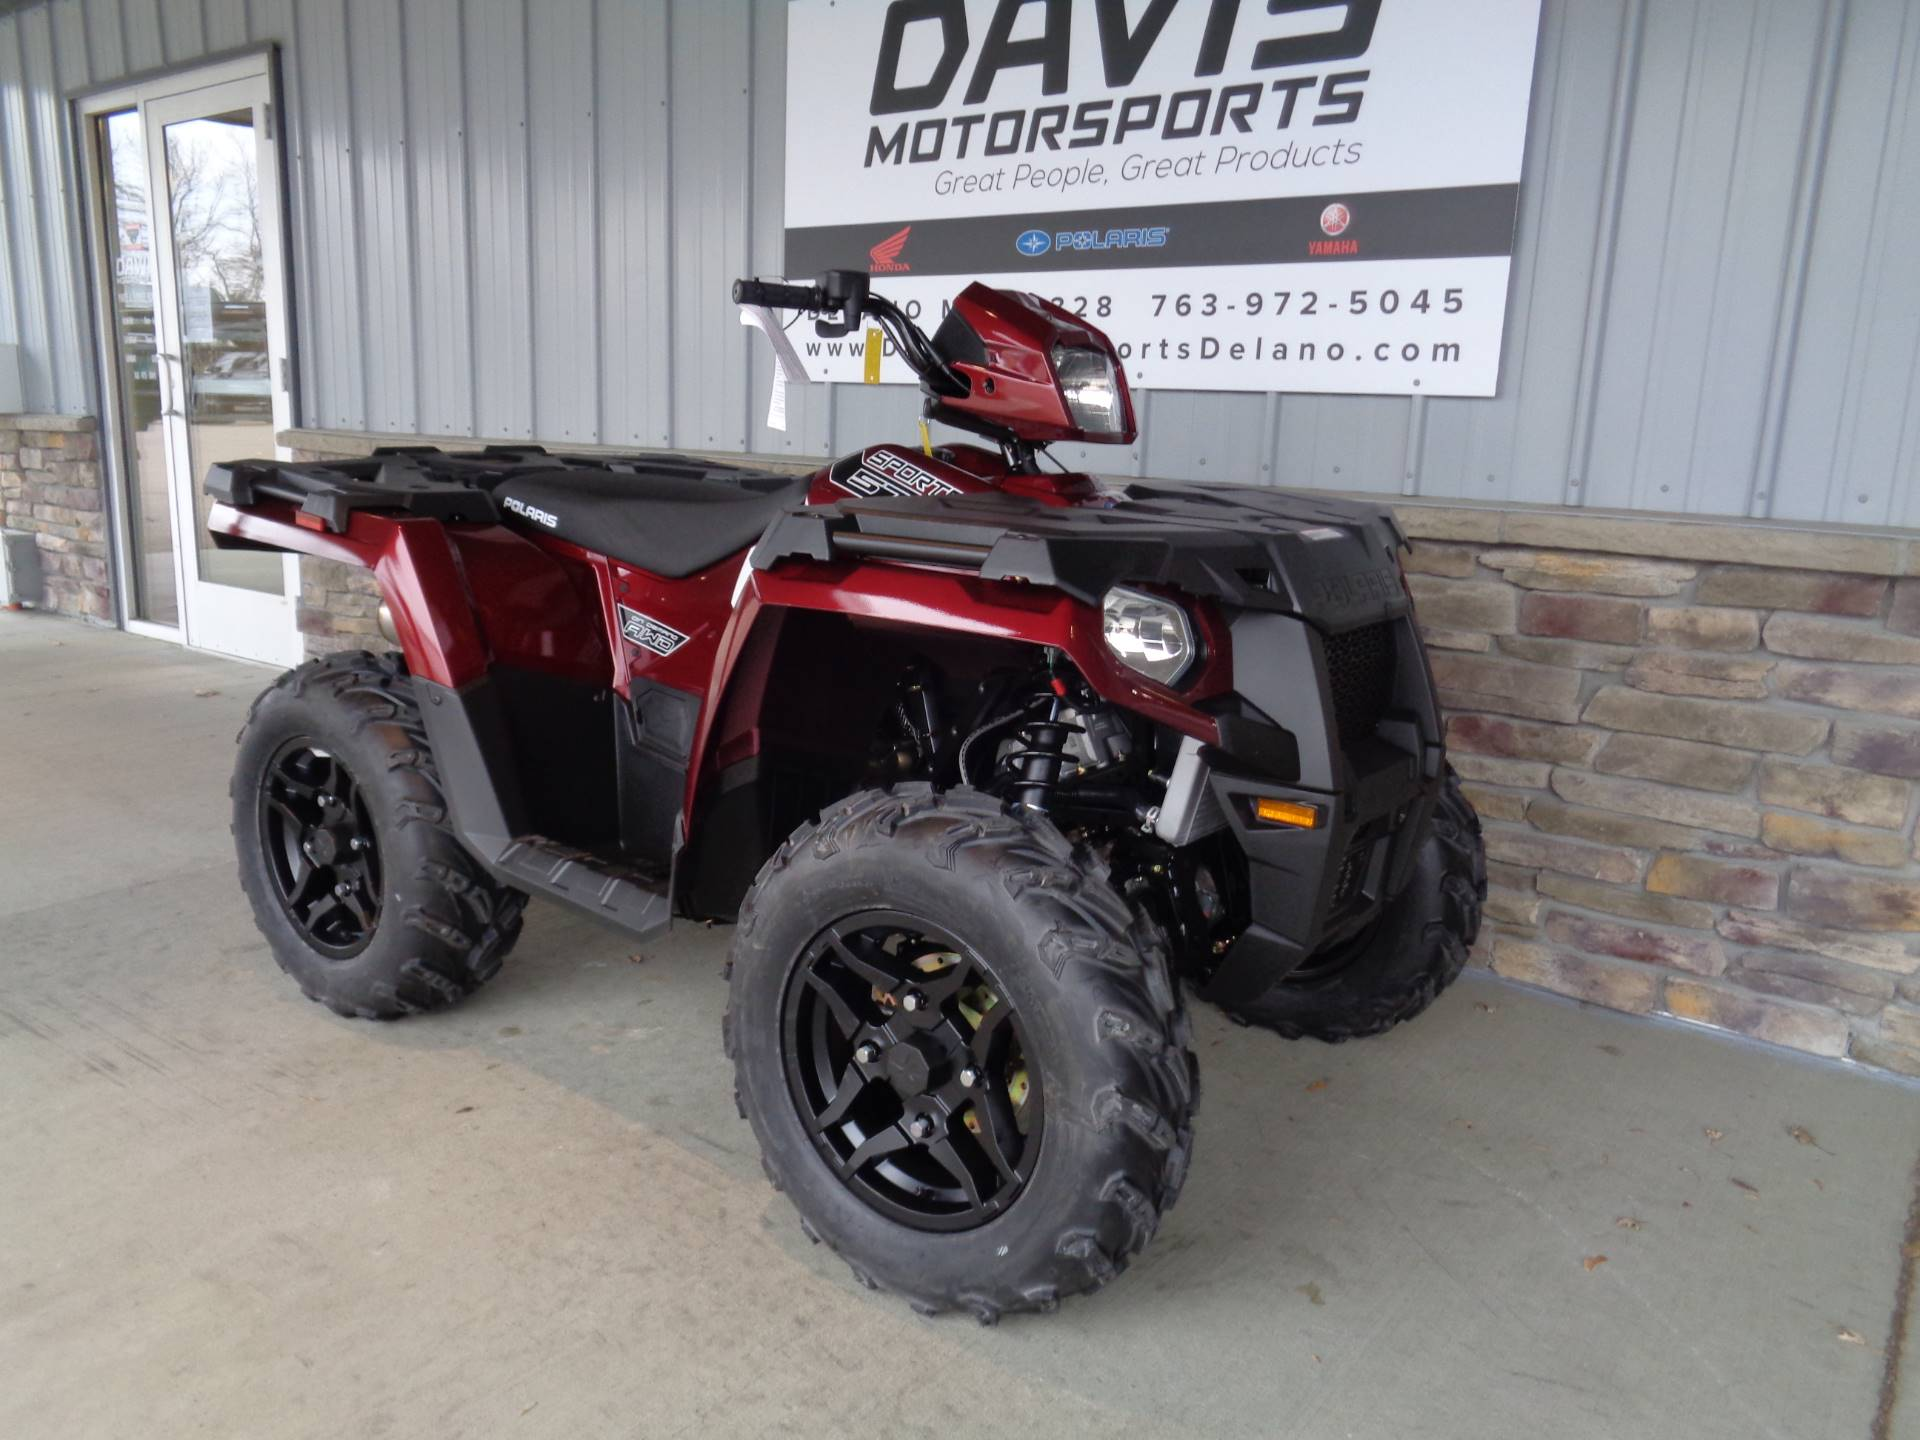 2019 Polaris Sportsman 570 SP in Delano, Minnesota - Photo 3